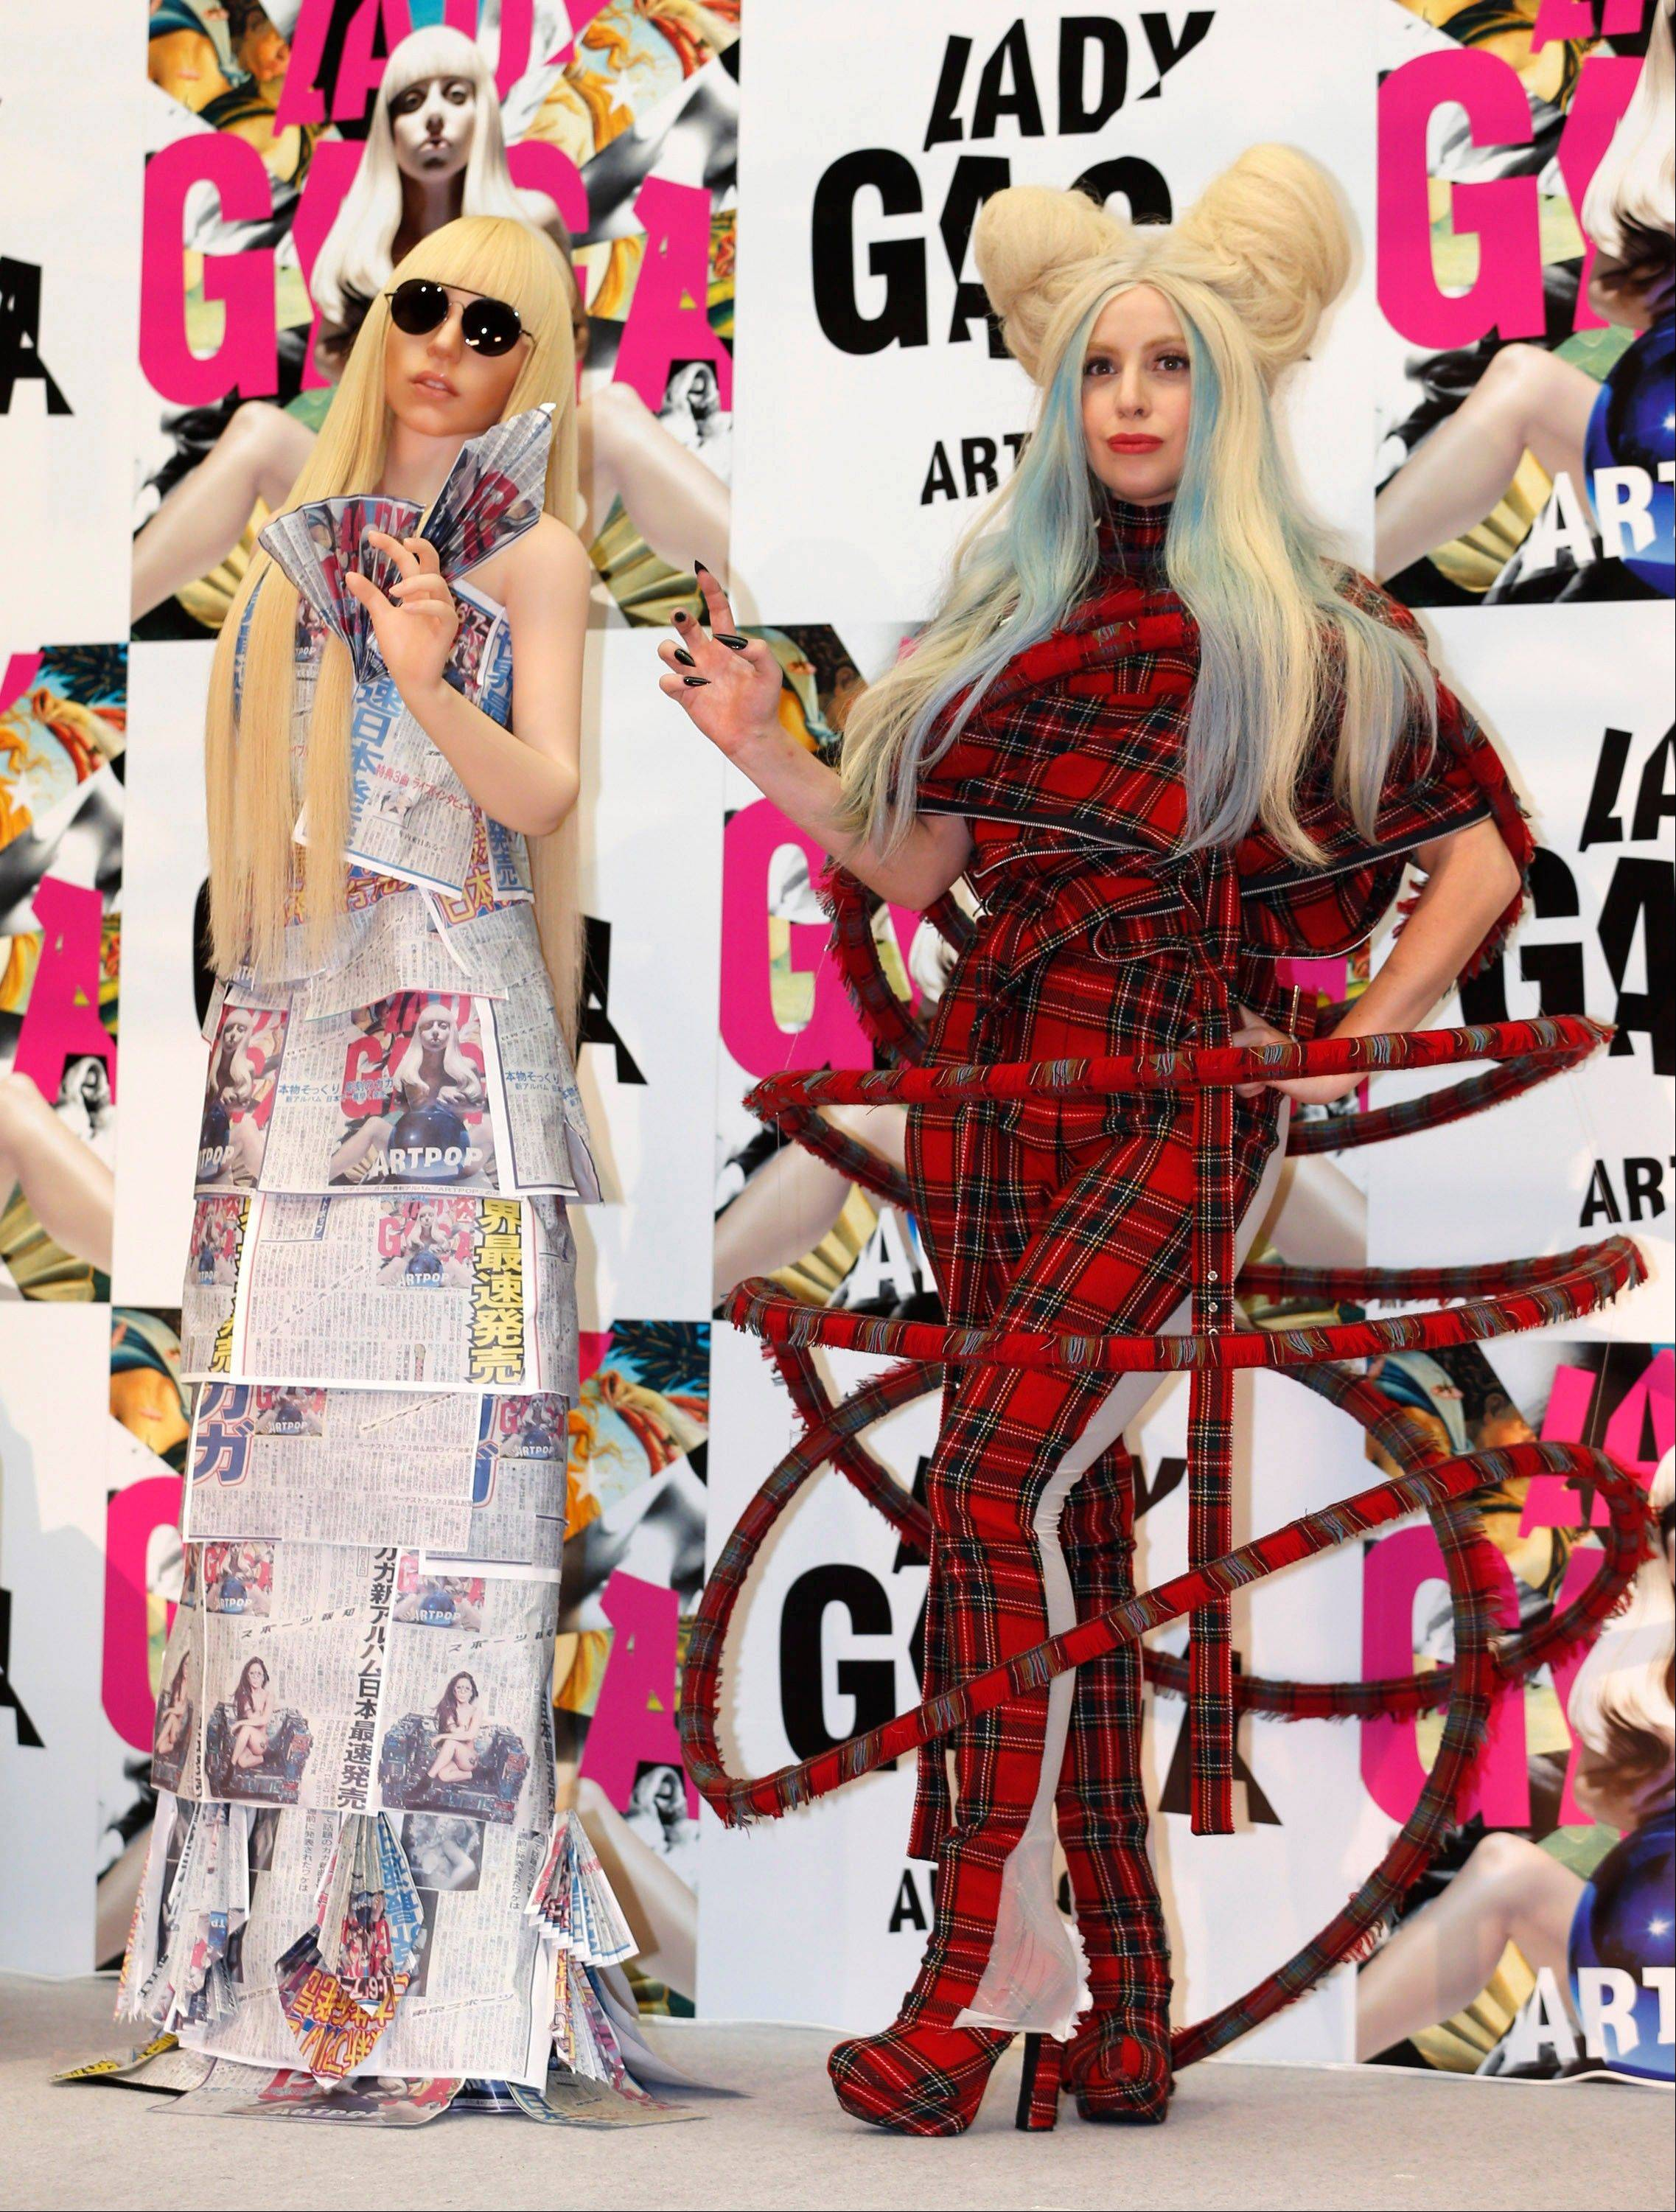 Lady Gaga poses with her life-size doll during a news conference to promote her album �ARTPOP� in Tokyo Sunday.